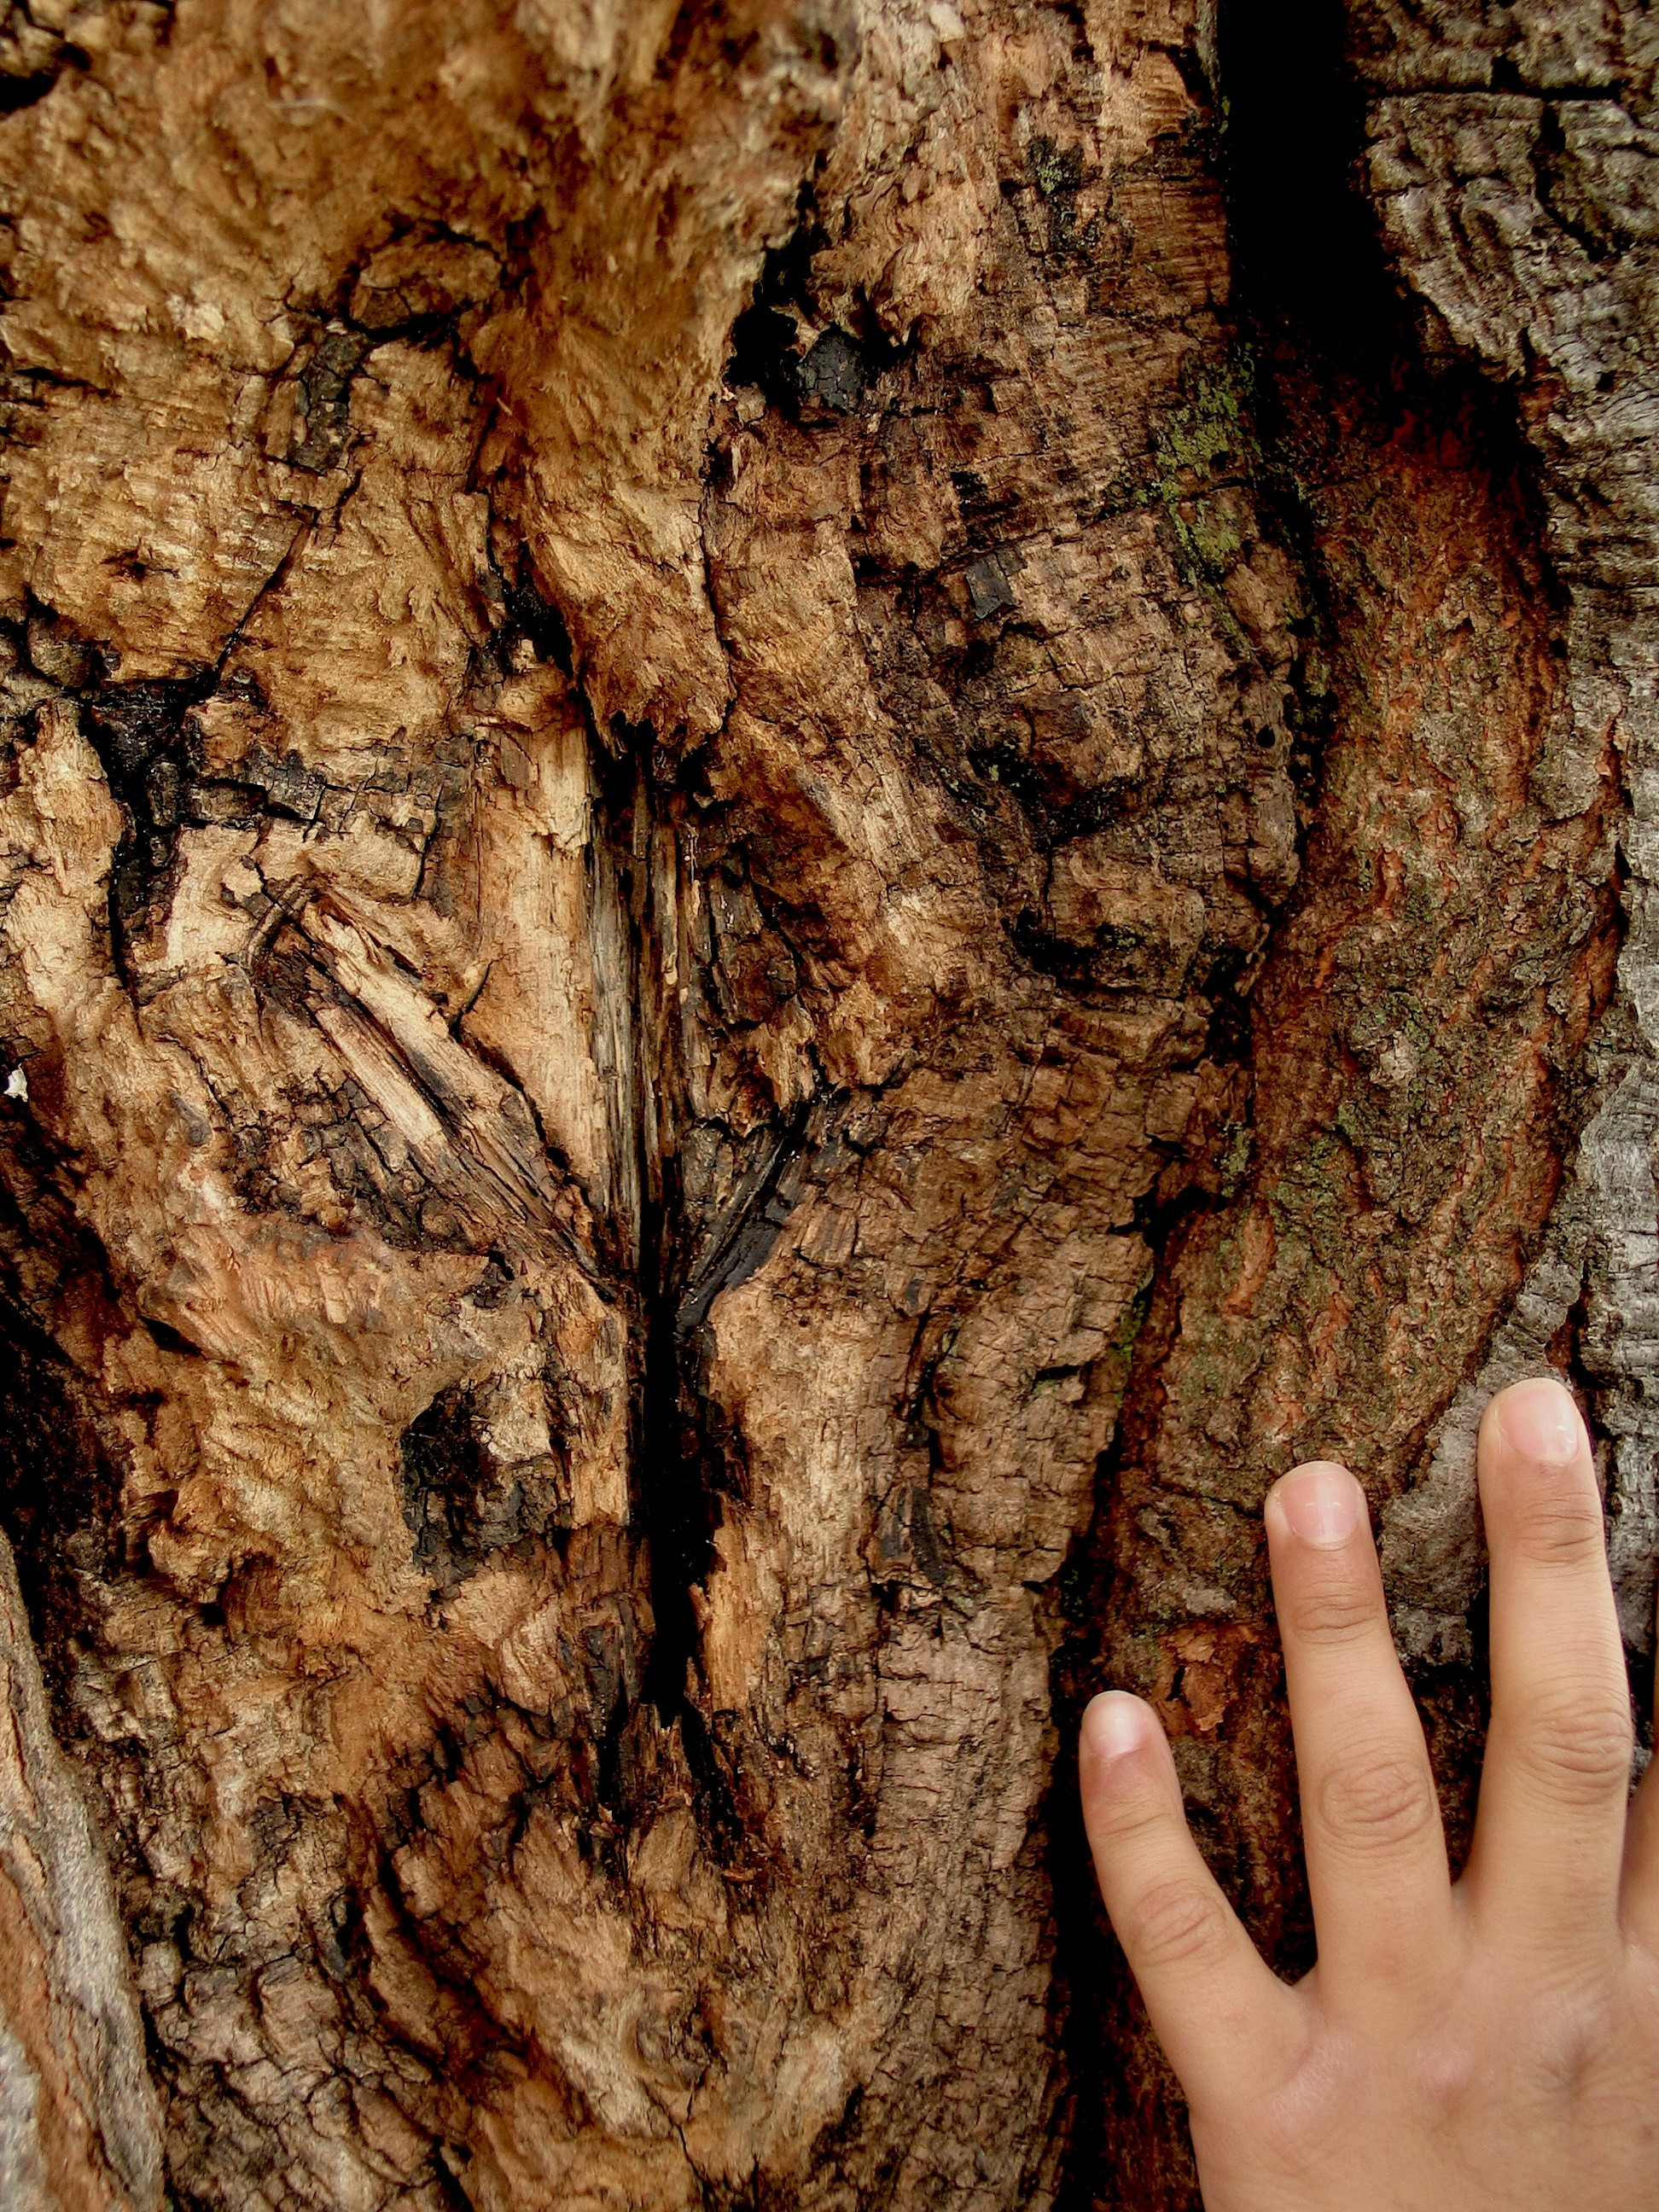 A young hand on the bark of a tree